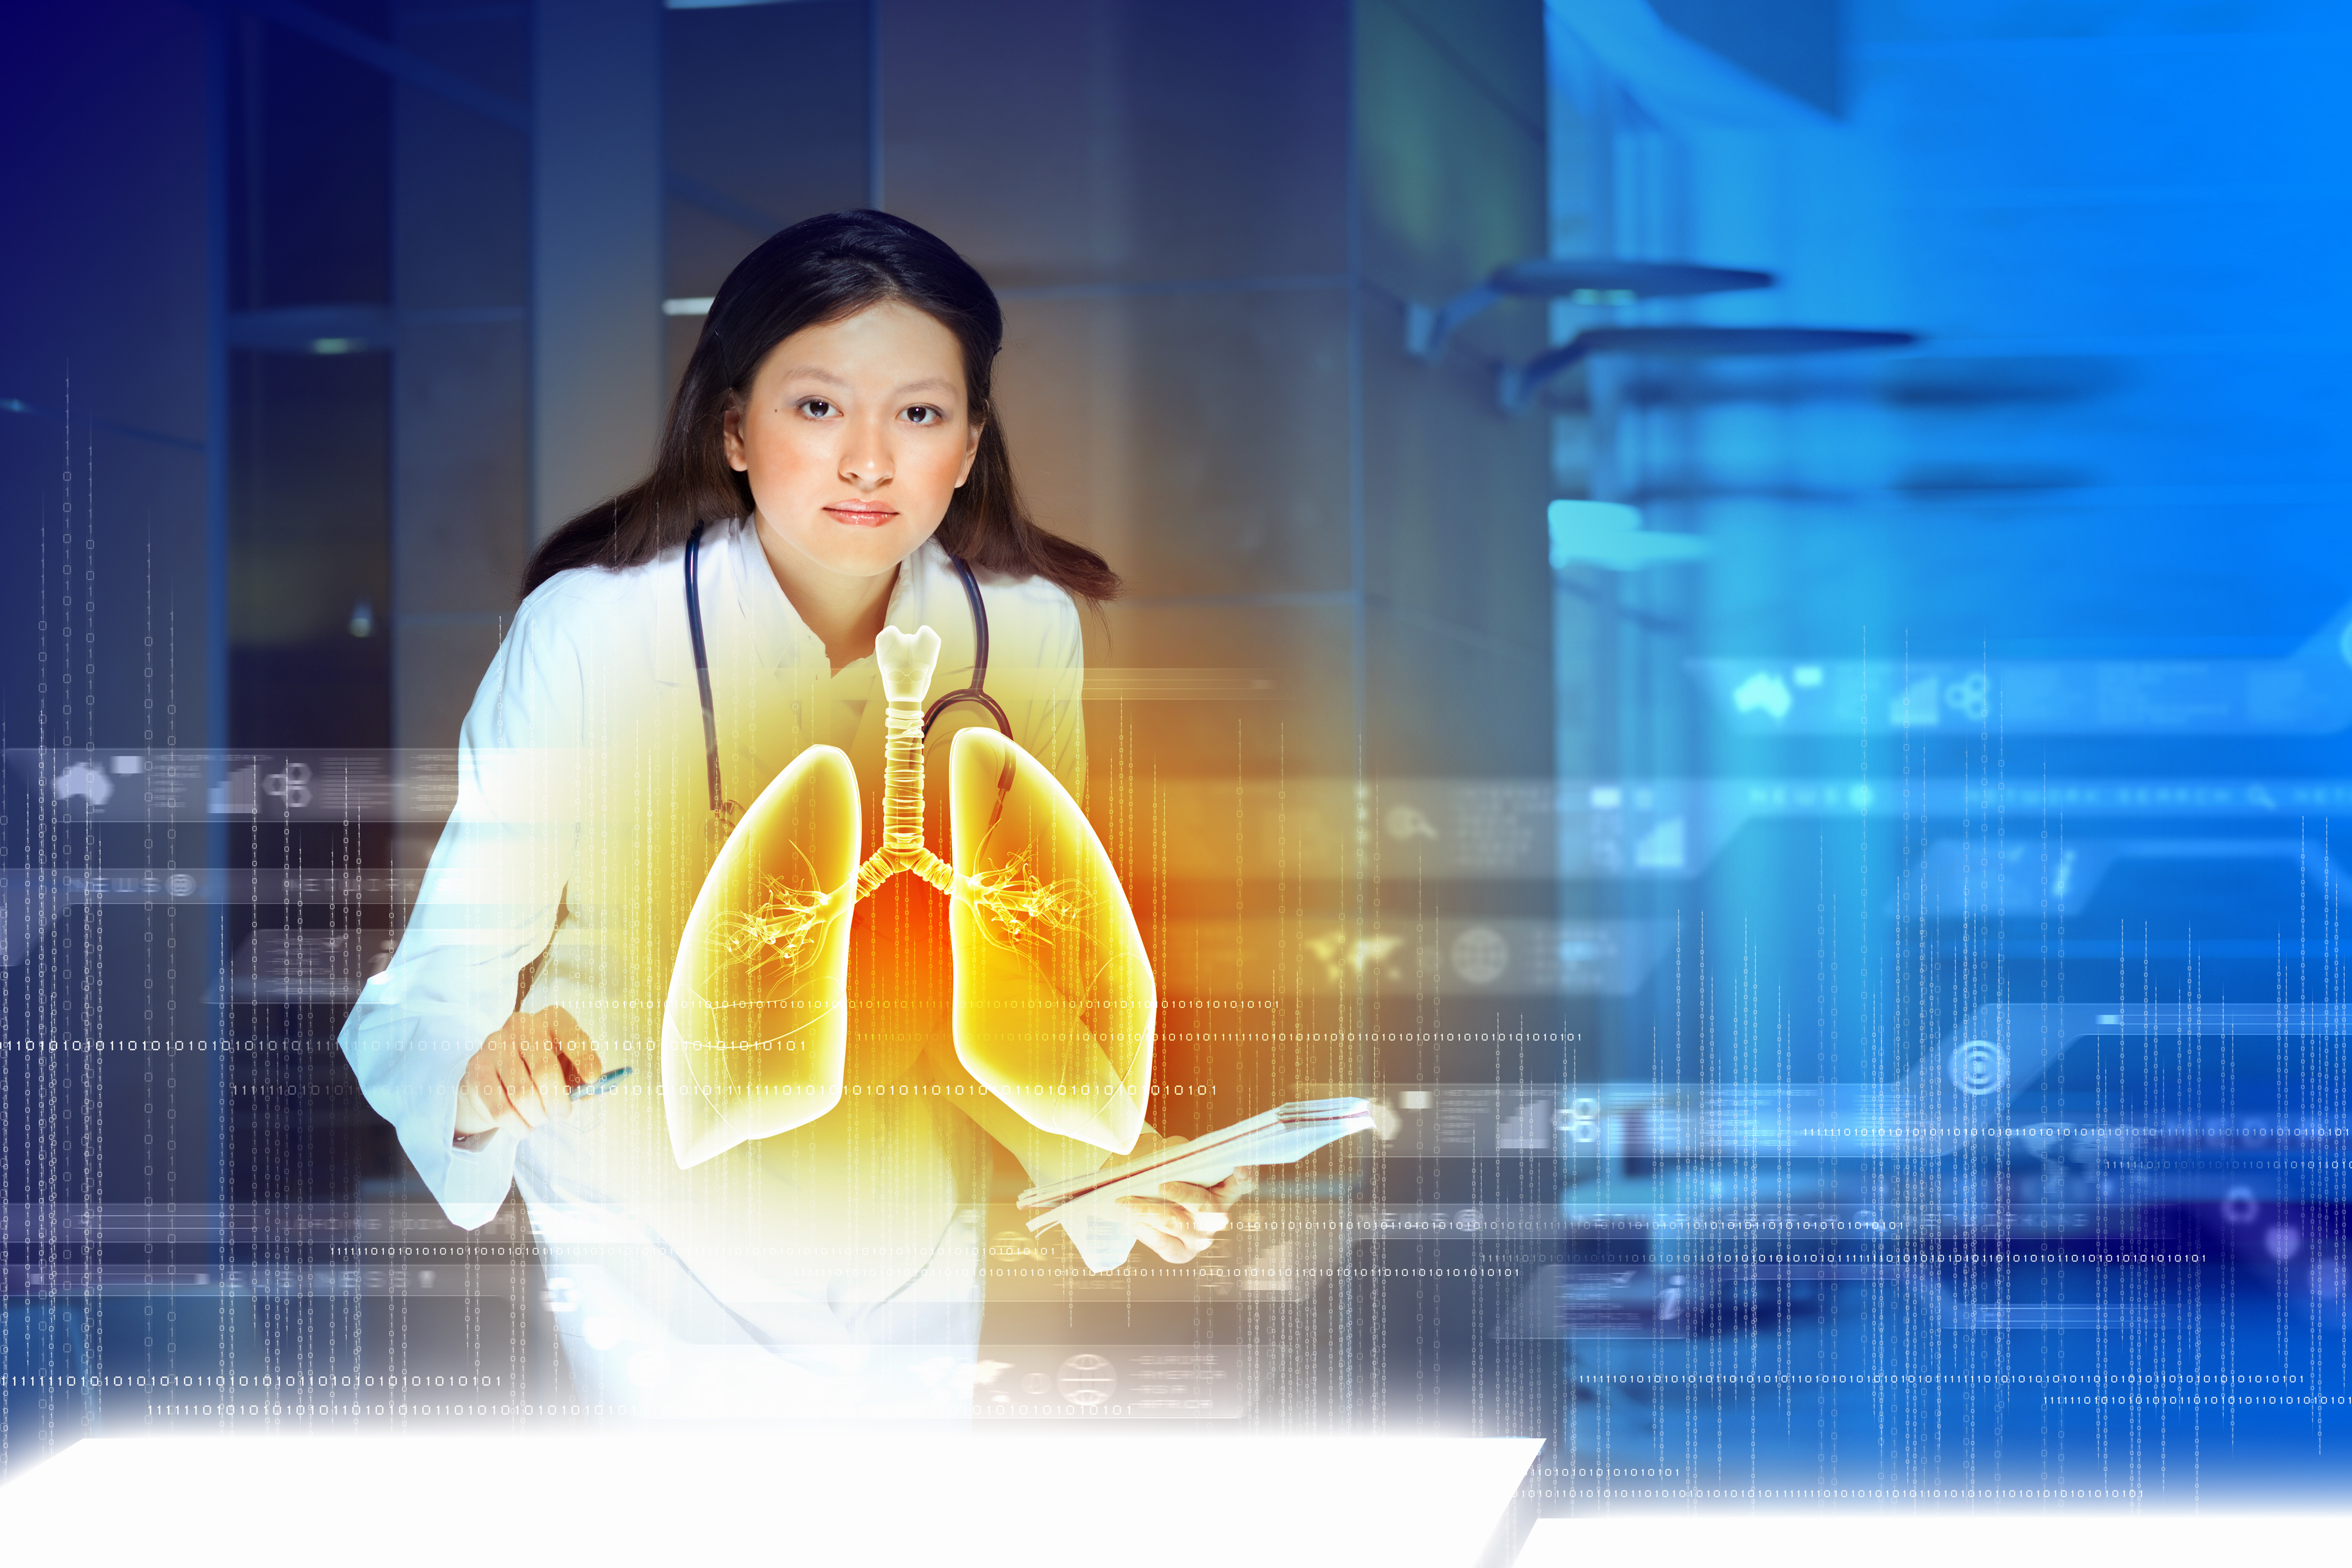 systemic sclerosis and interstitial lung disease